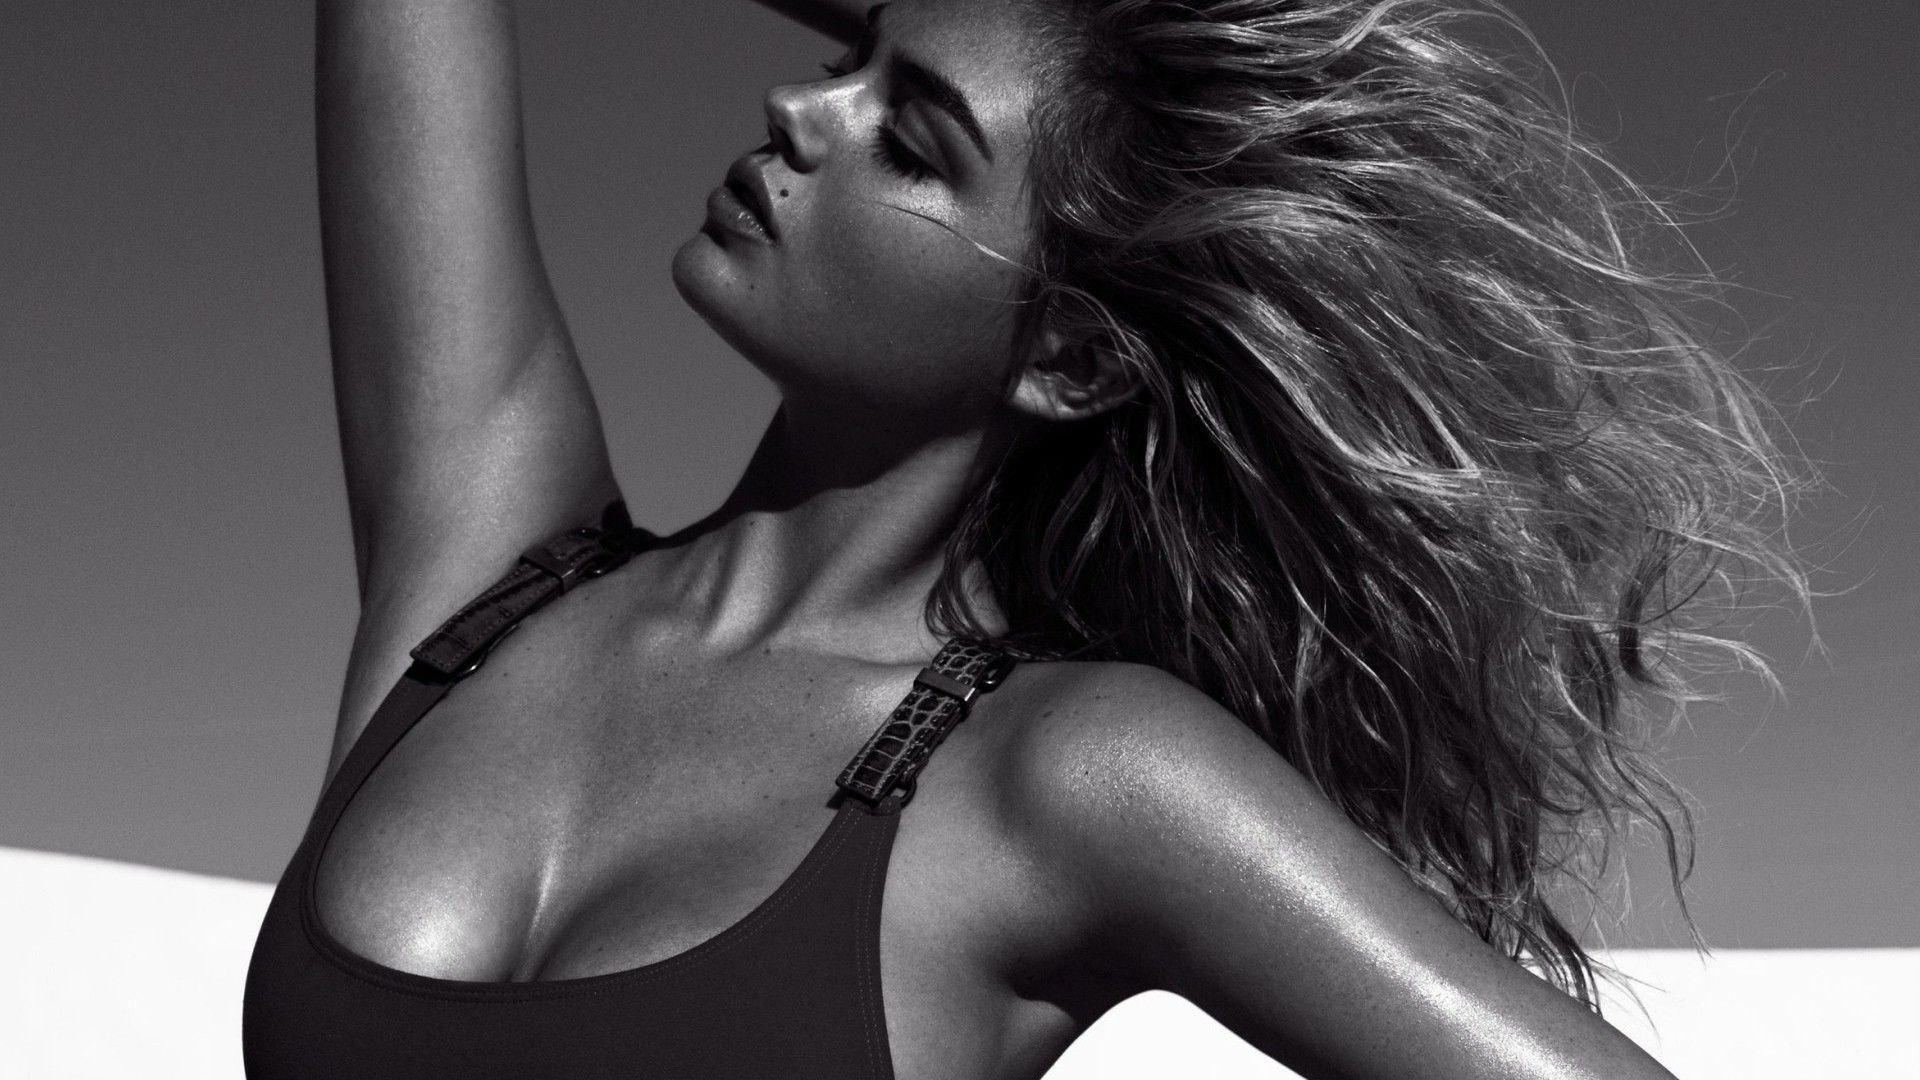 15 Best Kate Upton Swimsuit Photos Of All Time Therichest